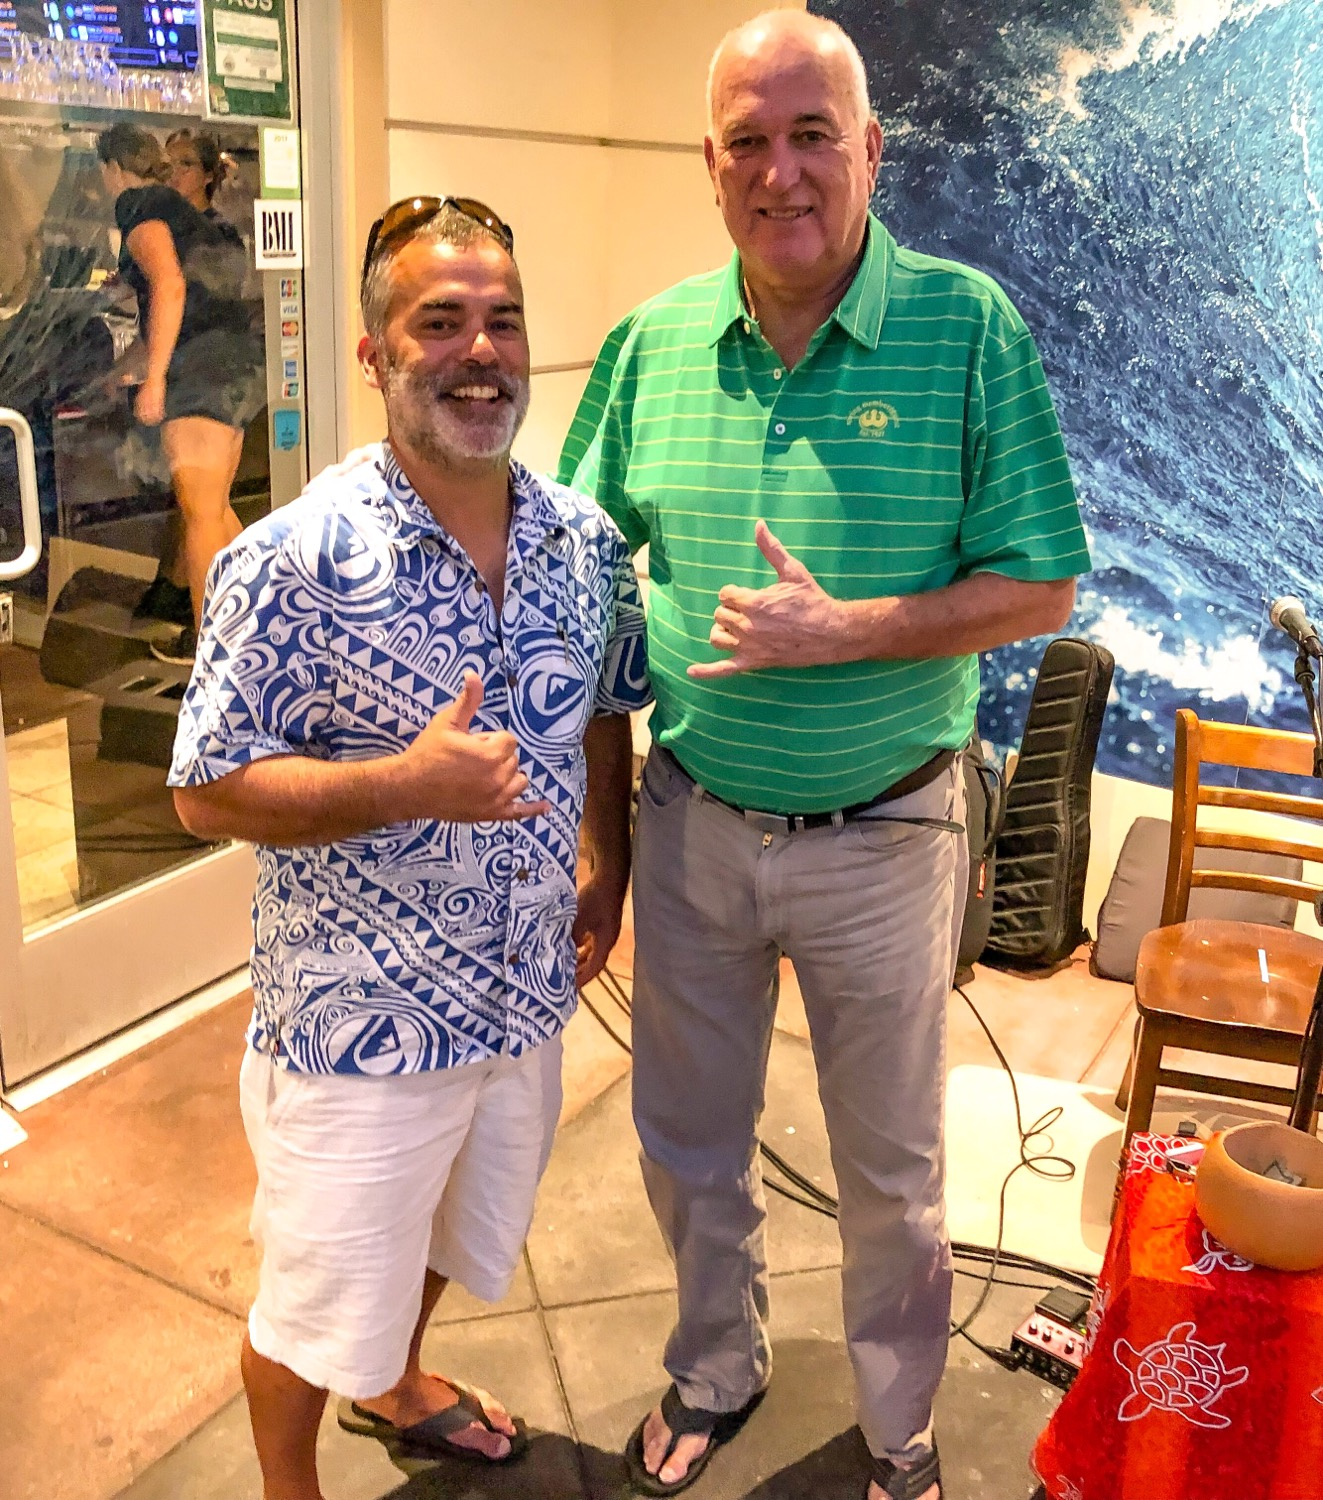 Meeting June Jones